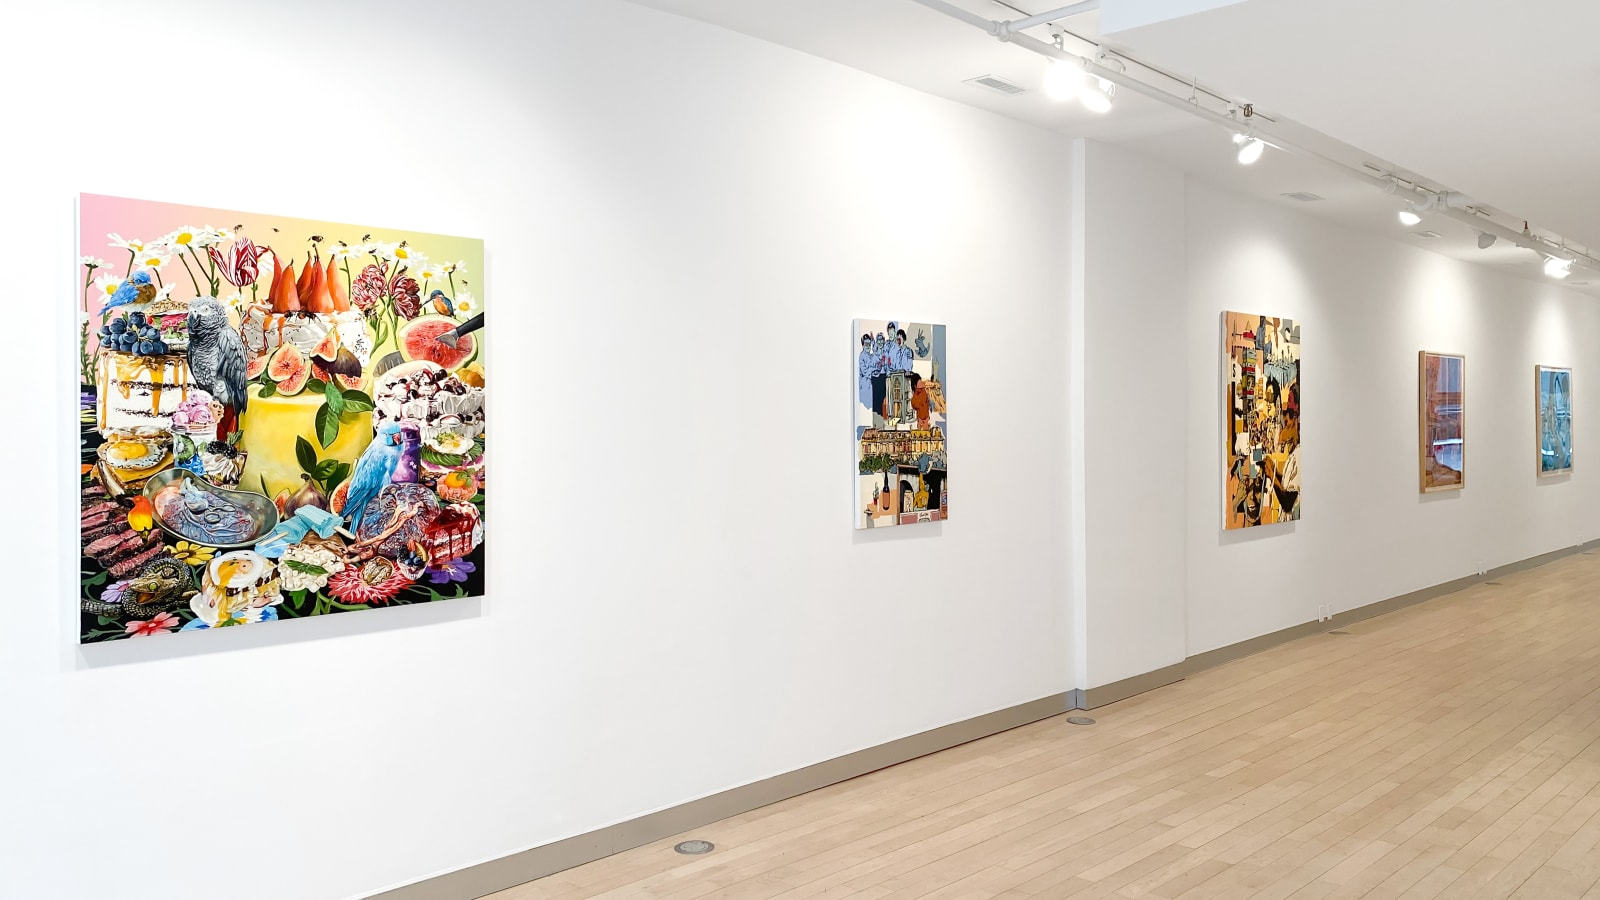 Installation view: Of Folly, Fortune, Glory, Ruin: William Buchina and Christina Nicodema